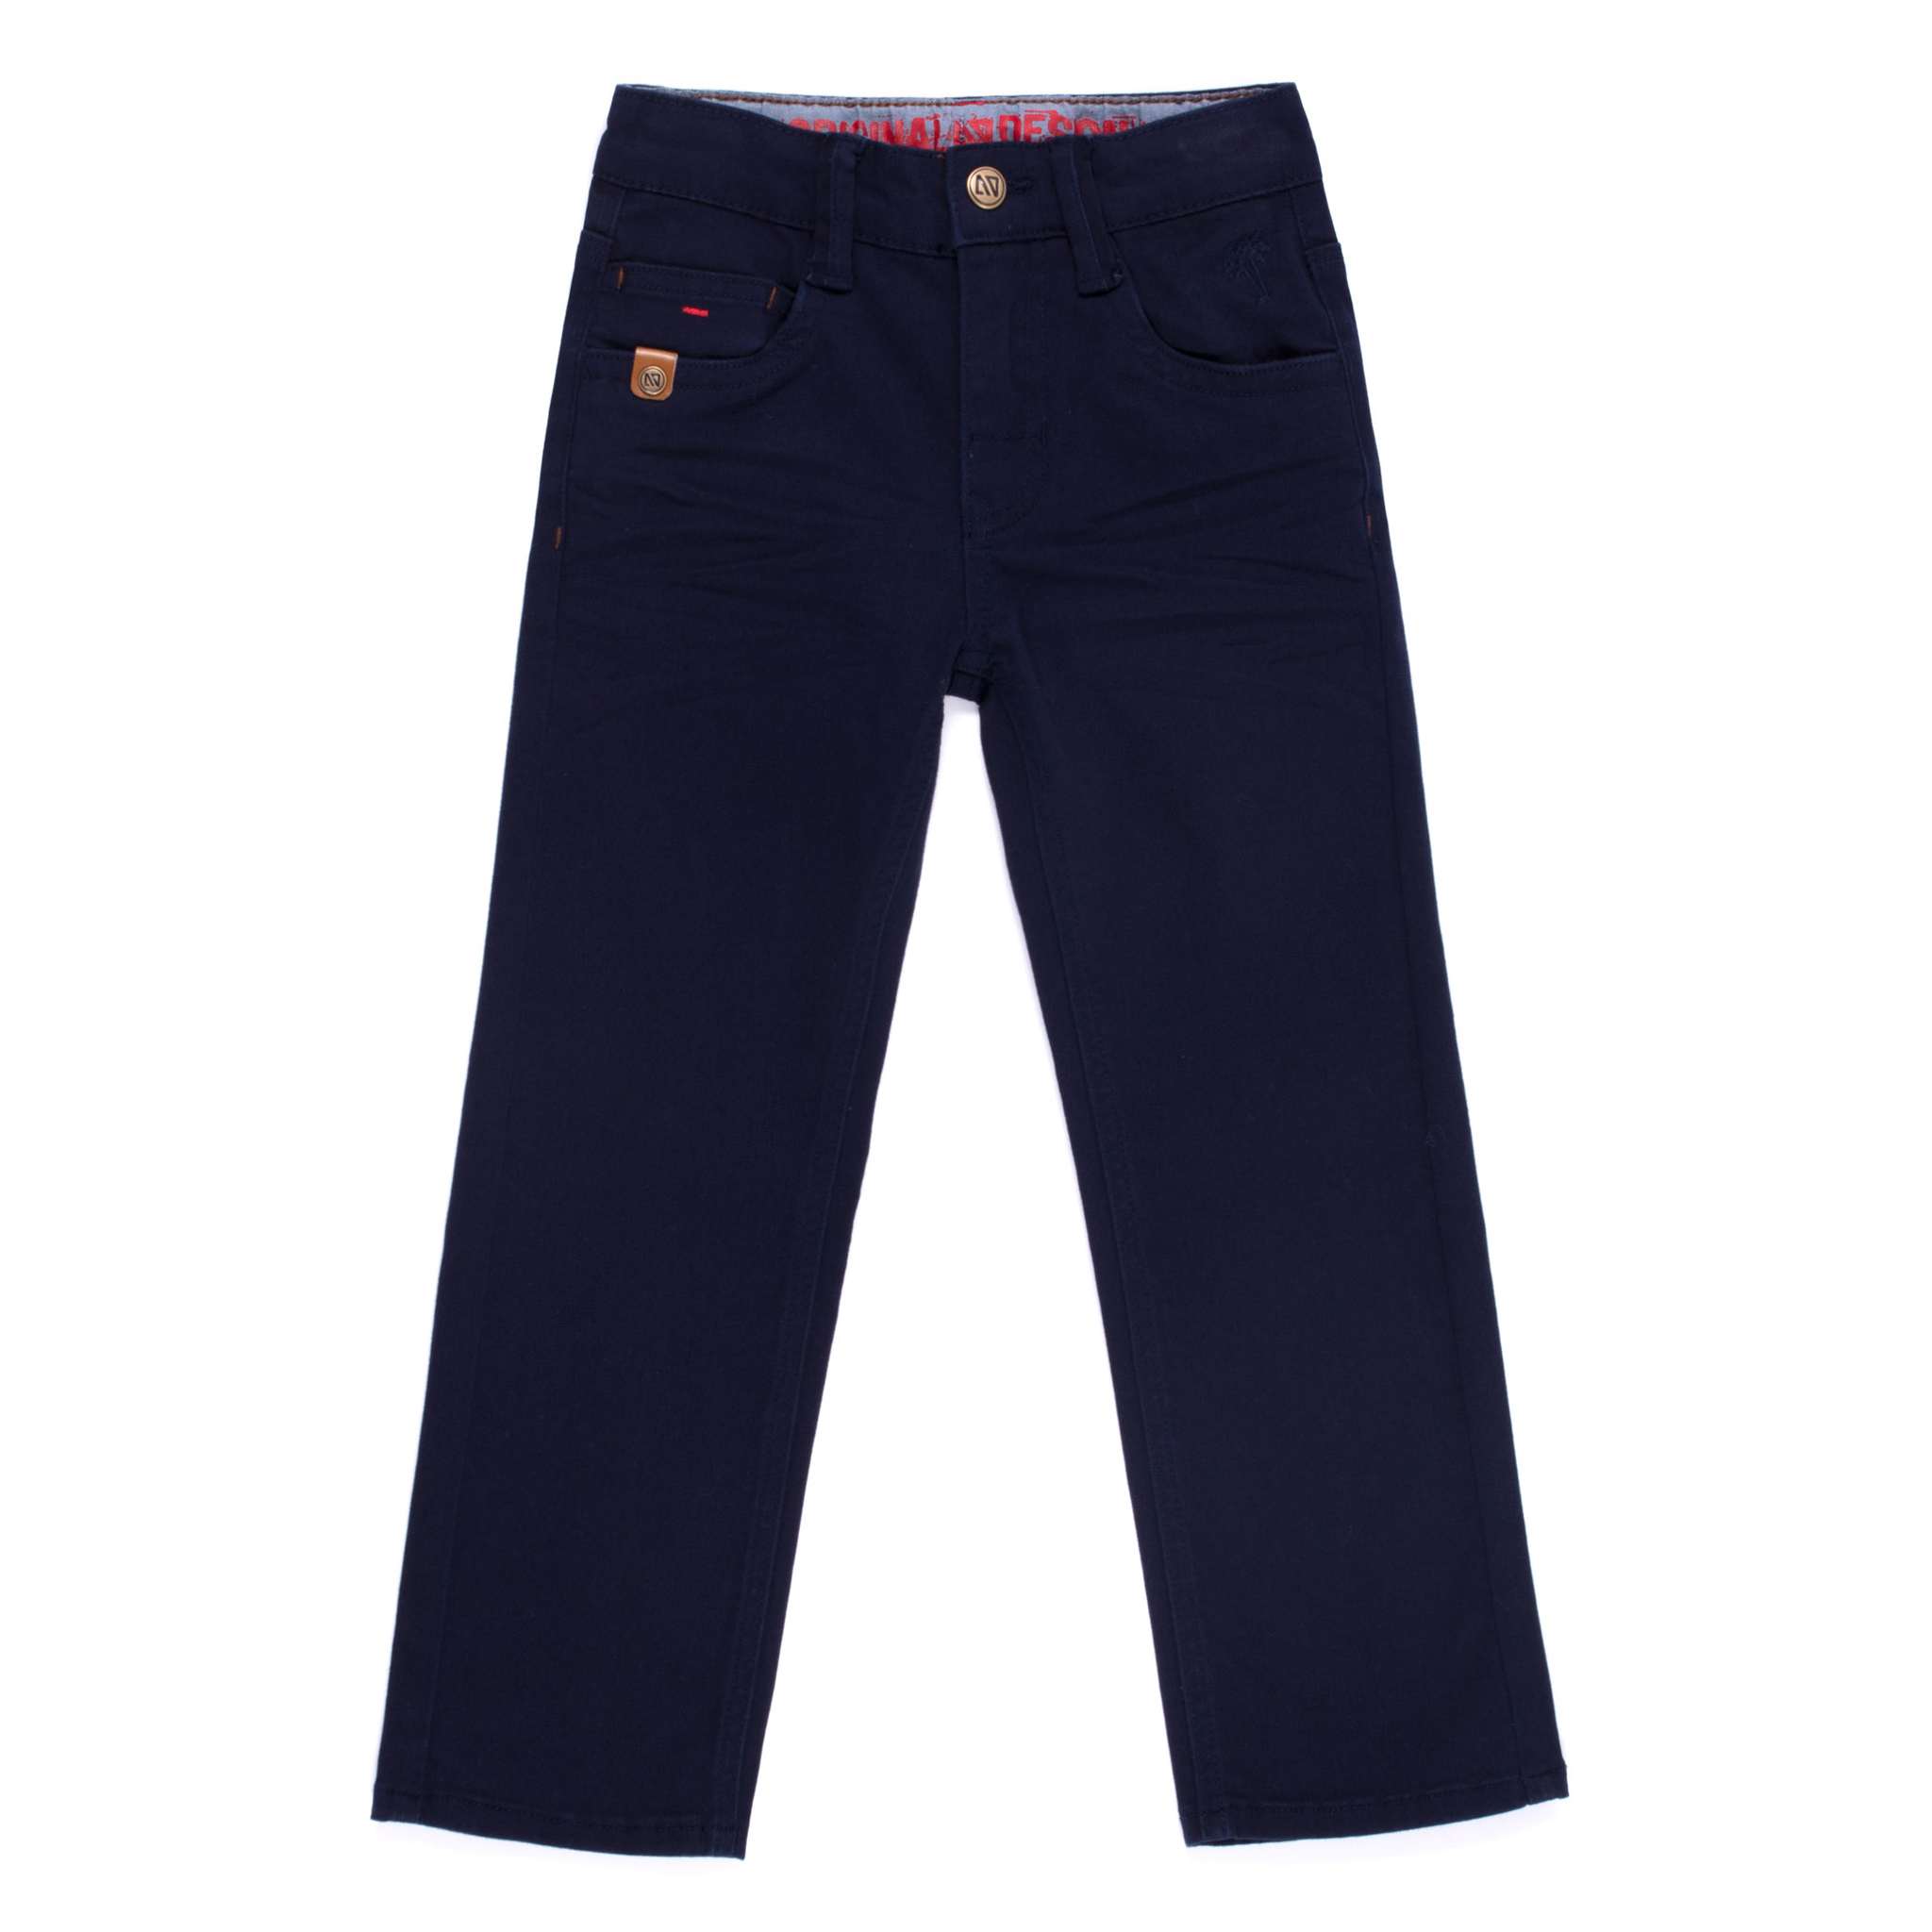 Pants - Navy - Boys